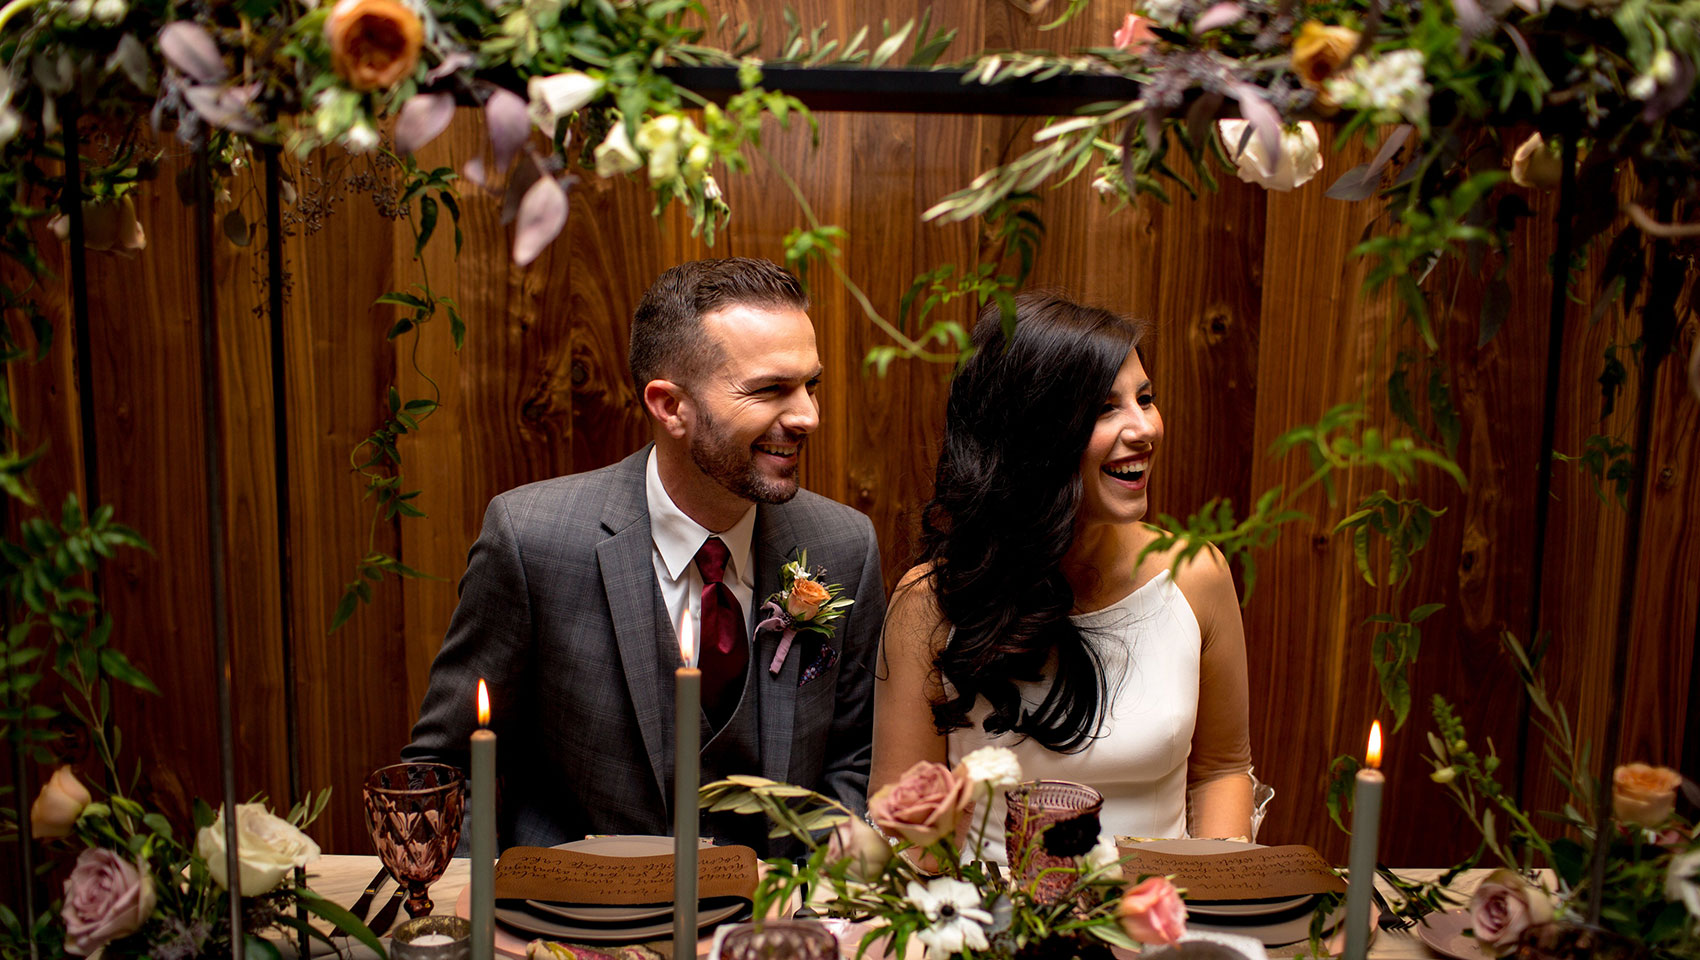 Kimpton Real Weddings: Real Wedding Stories At Kimpton Hotel Born In Denver